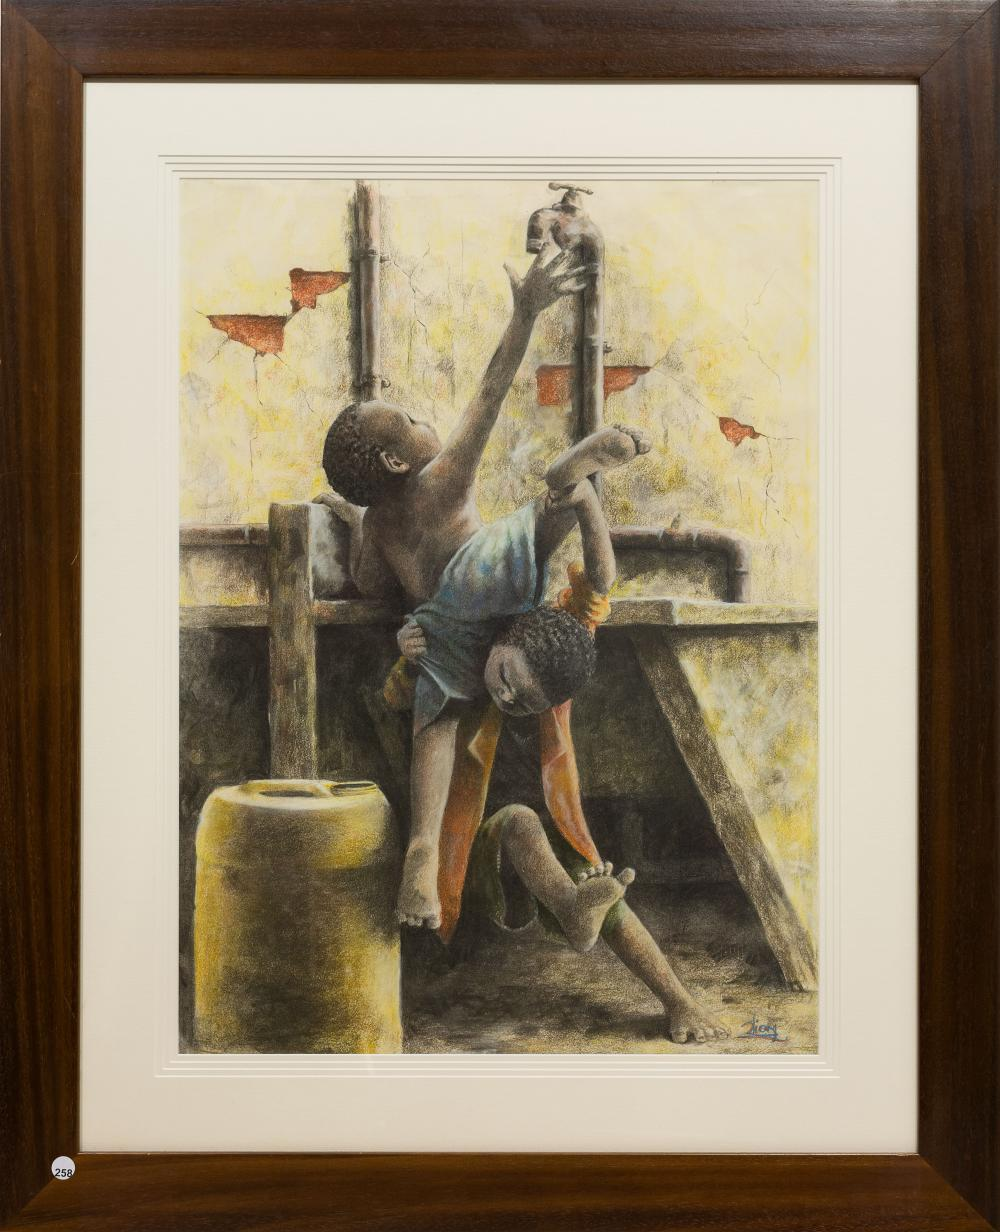 JLion (Jerry) Motau (SA 20th C) Mixed Media, Collecting Water, Signed, 75 x 55